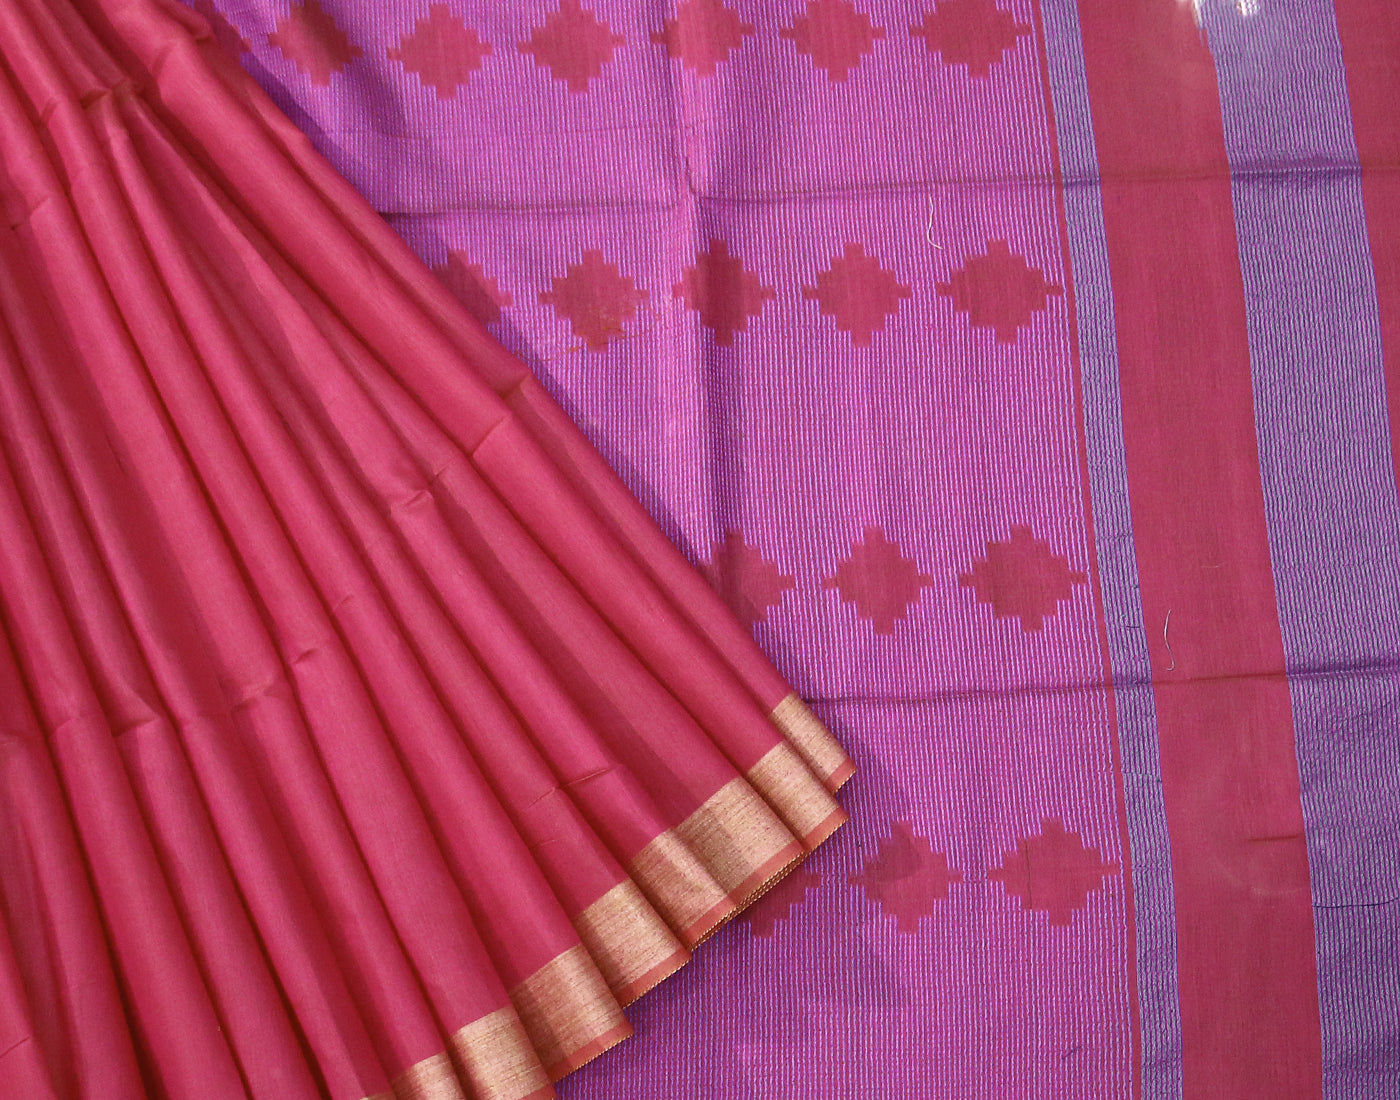 Pink Kota Jacquard Saree With Fringes